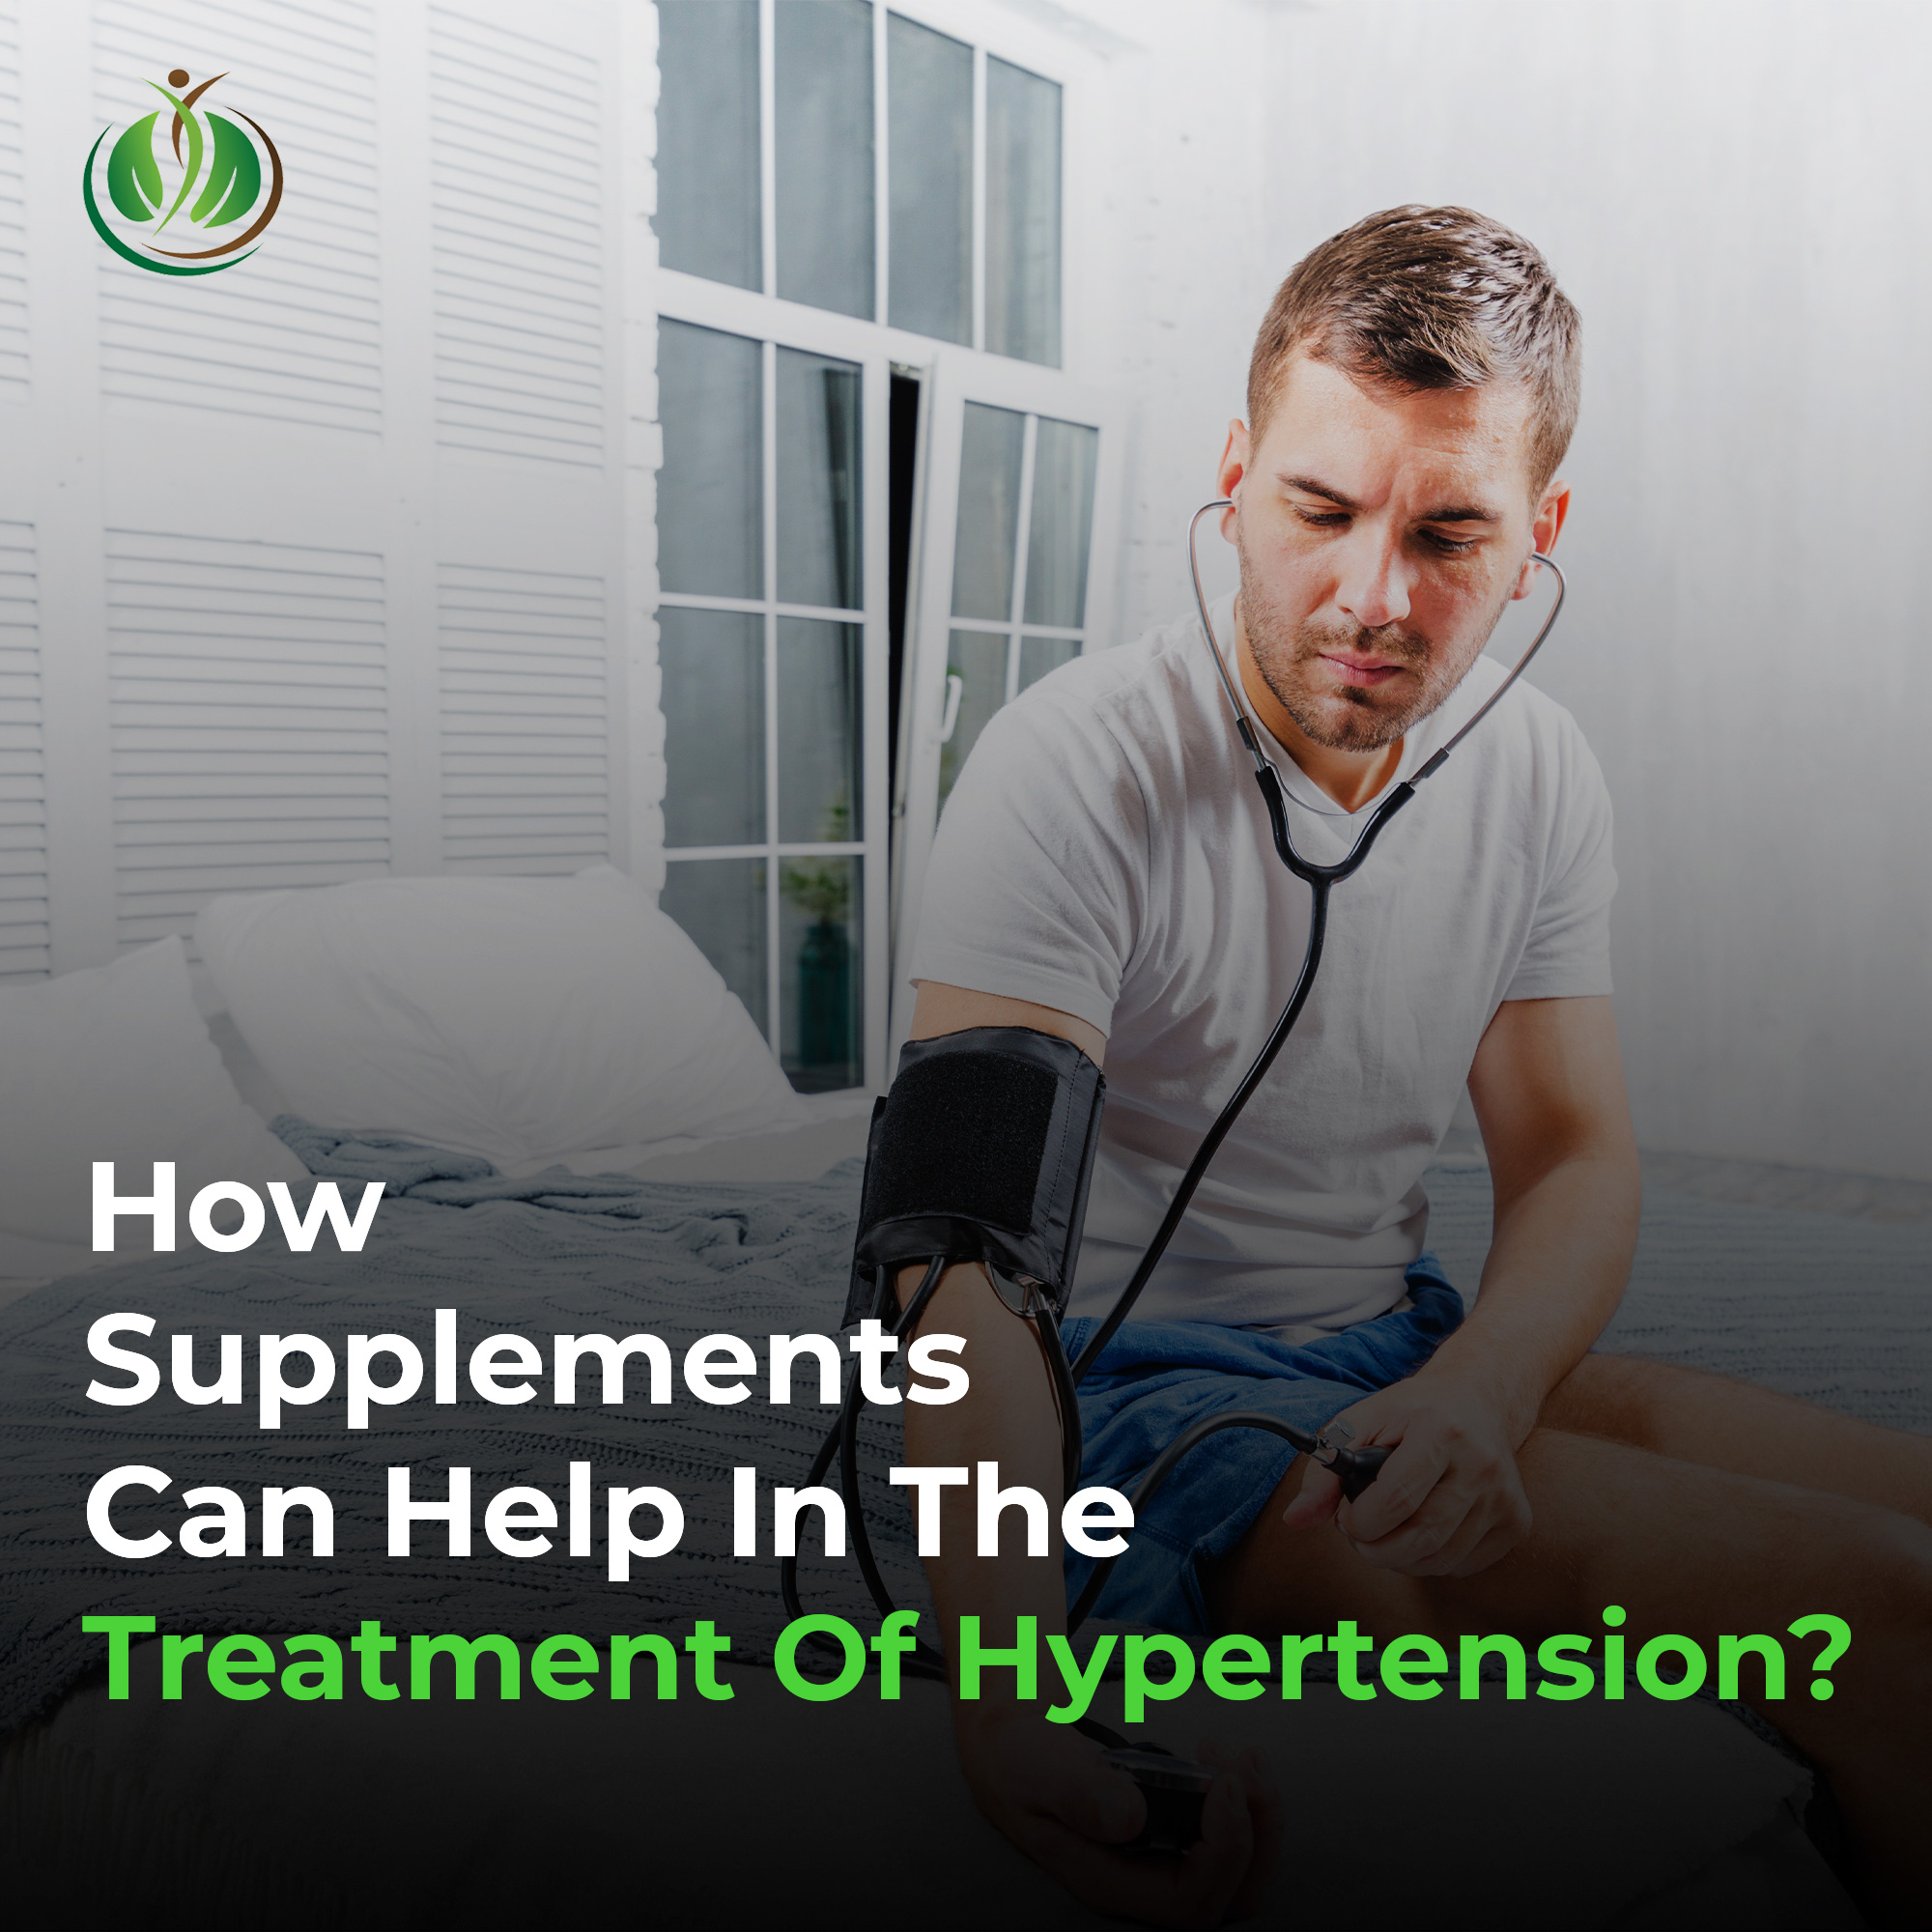 How Supplements Can Help in the Treatment of Hypertension?